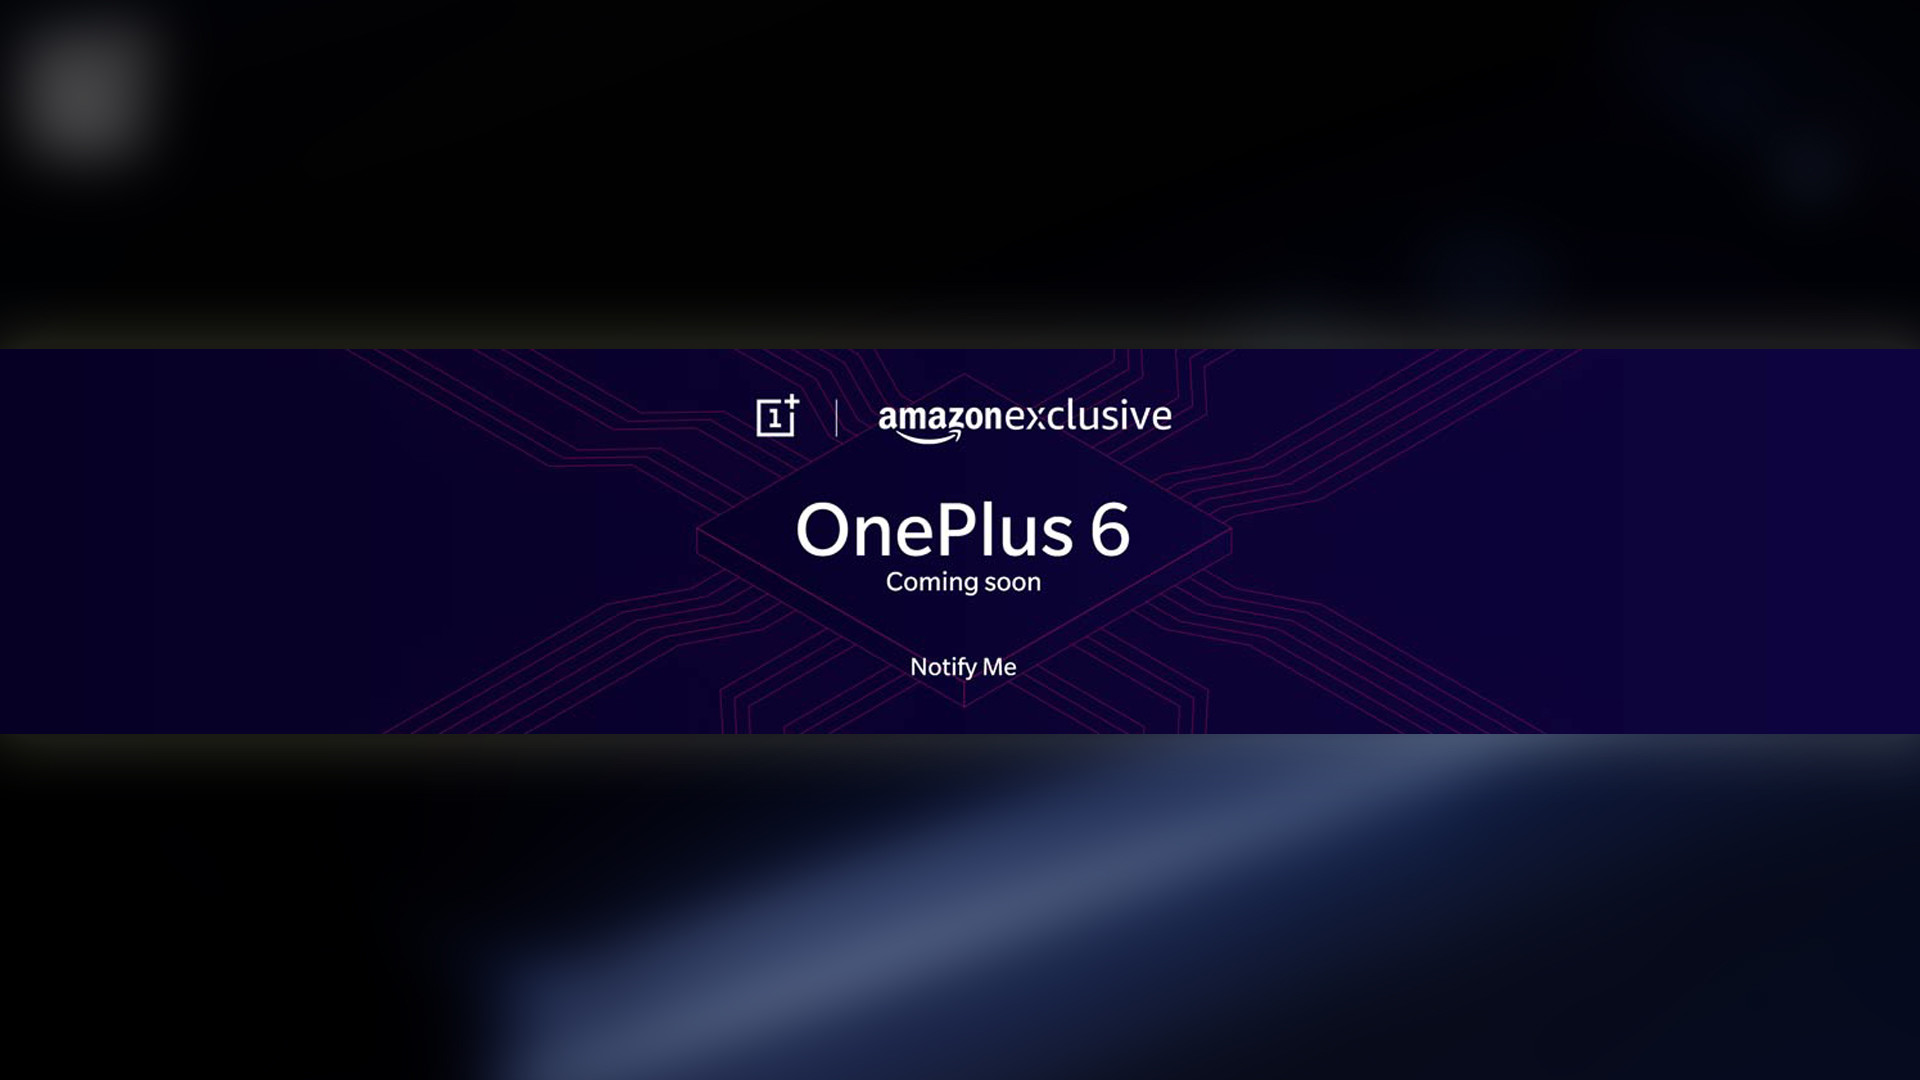 Amazon India lists OnePlus 6 as coming soon